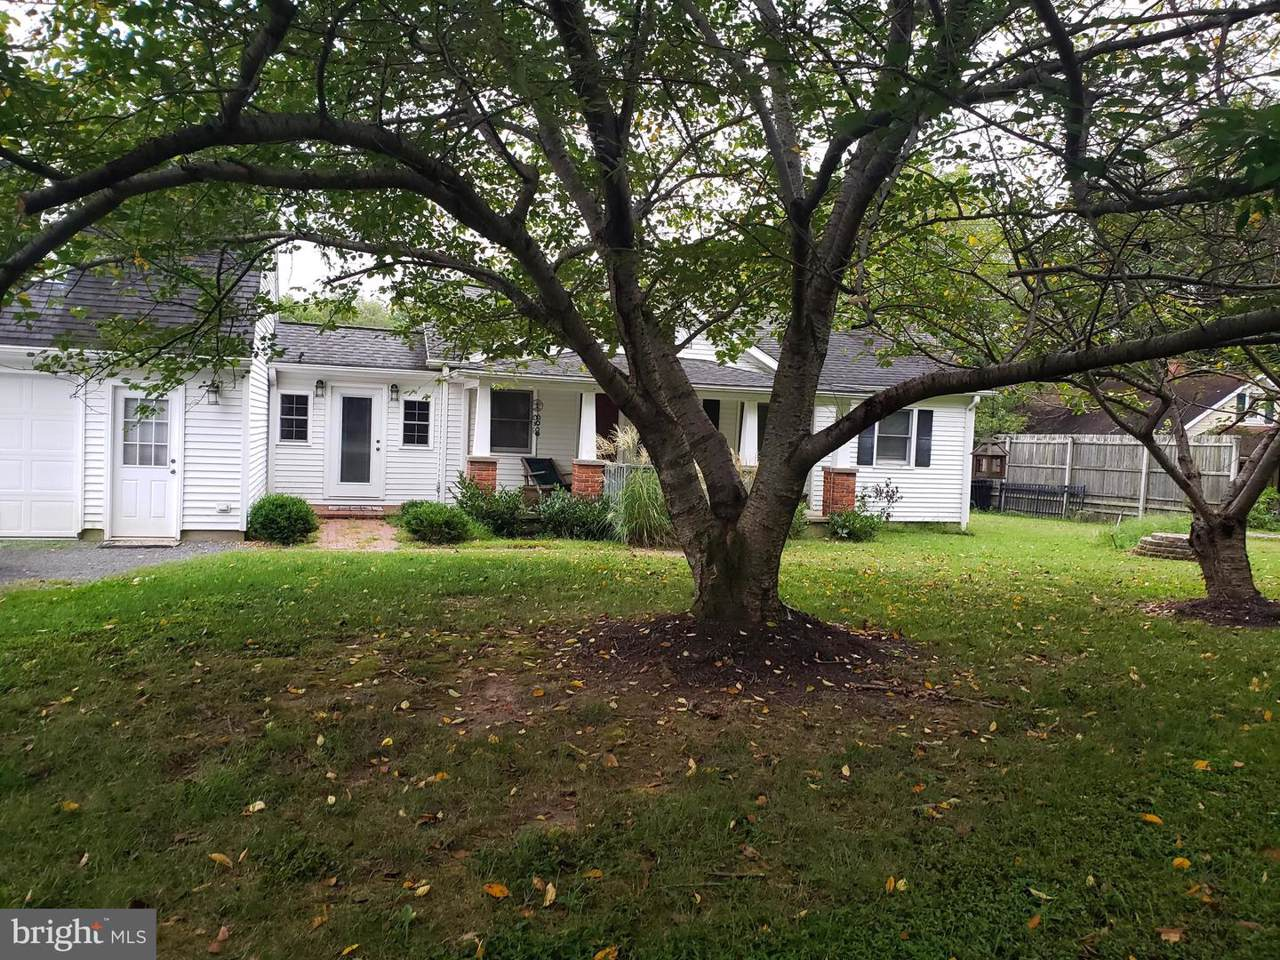 353 Mccarty - Photo 1